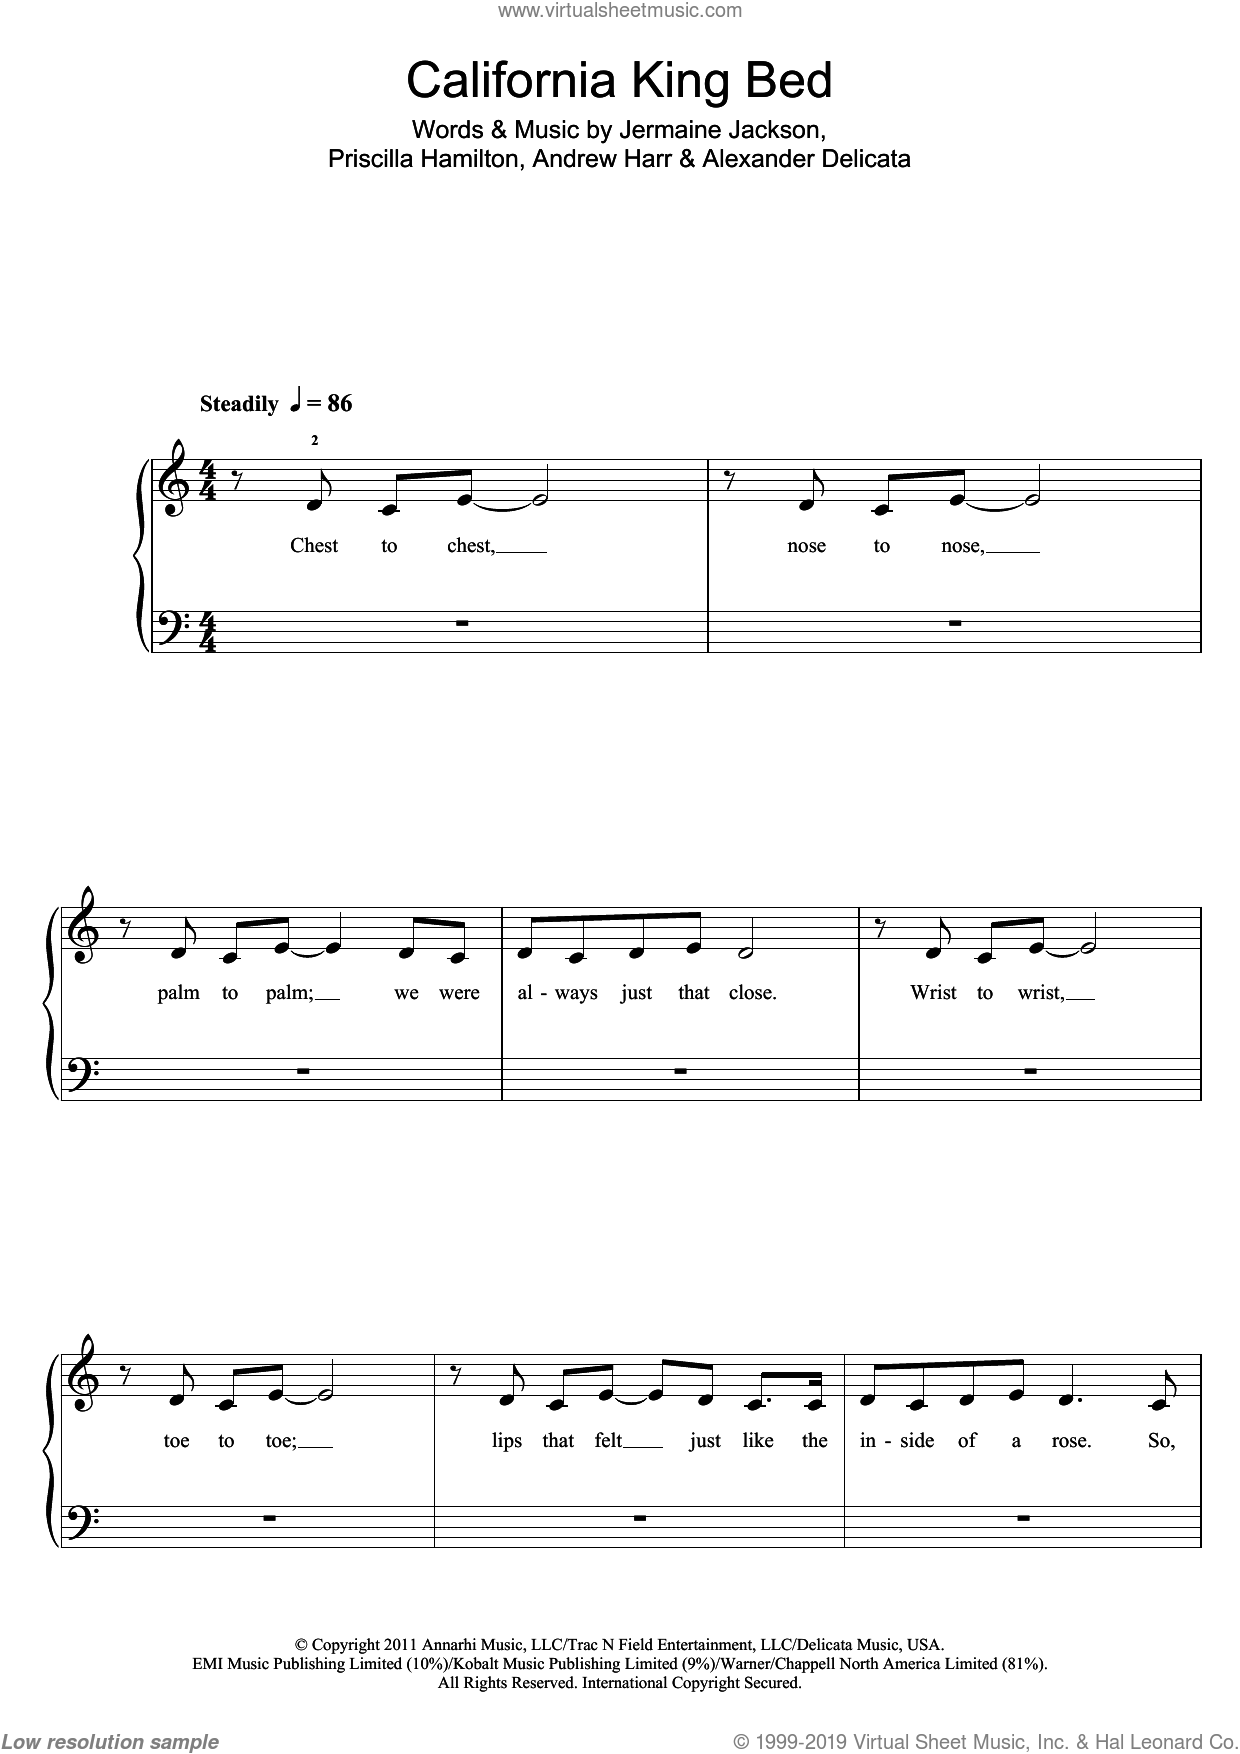 California King Bed sheet music for piano solo (5-fingers) by Rihanna, Alexander Delicata, Andrew Harr, Jermaine Jackson and Priscilla Hamilton, beginner piano (5-fingers)